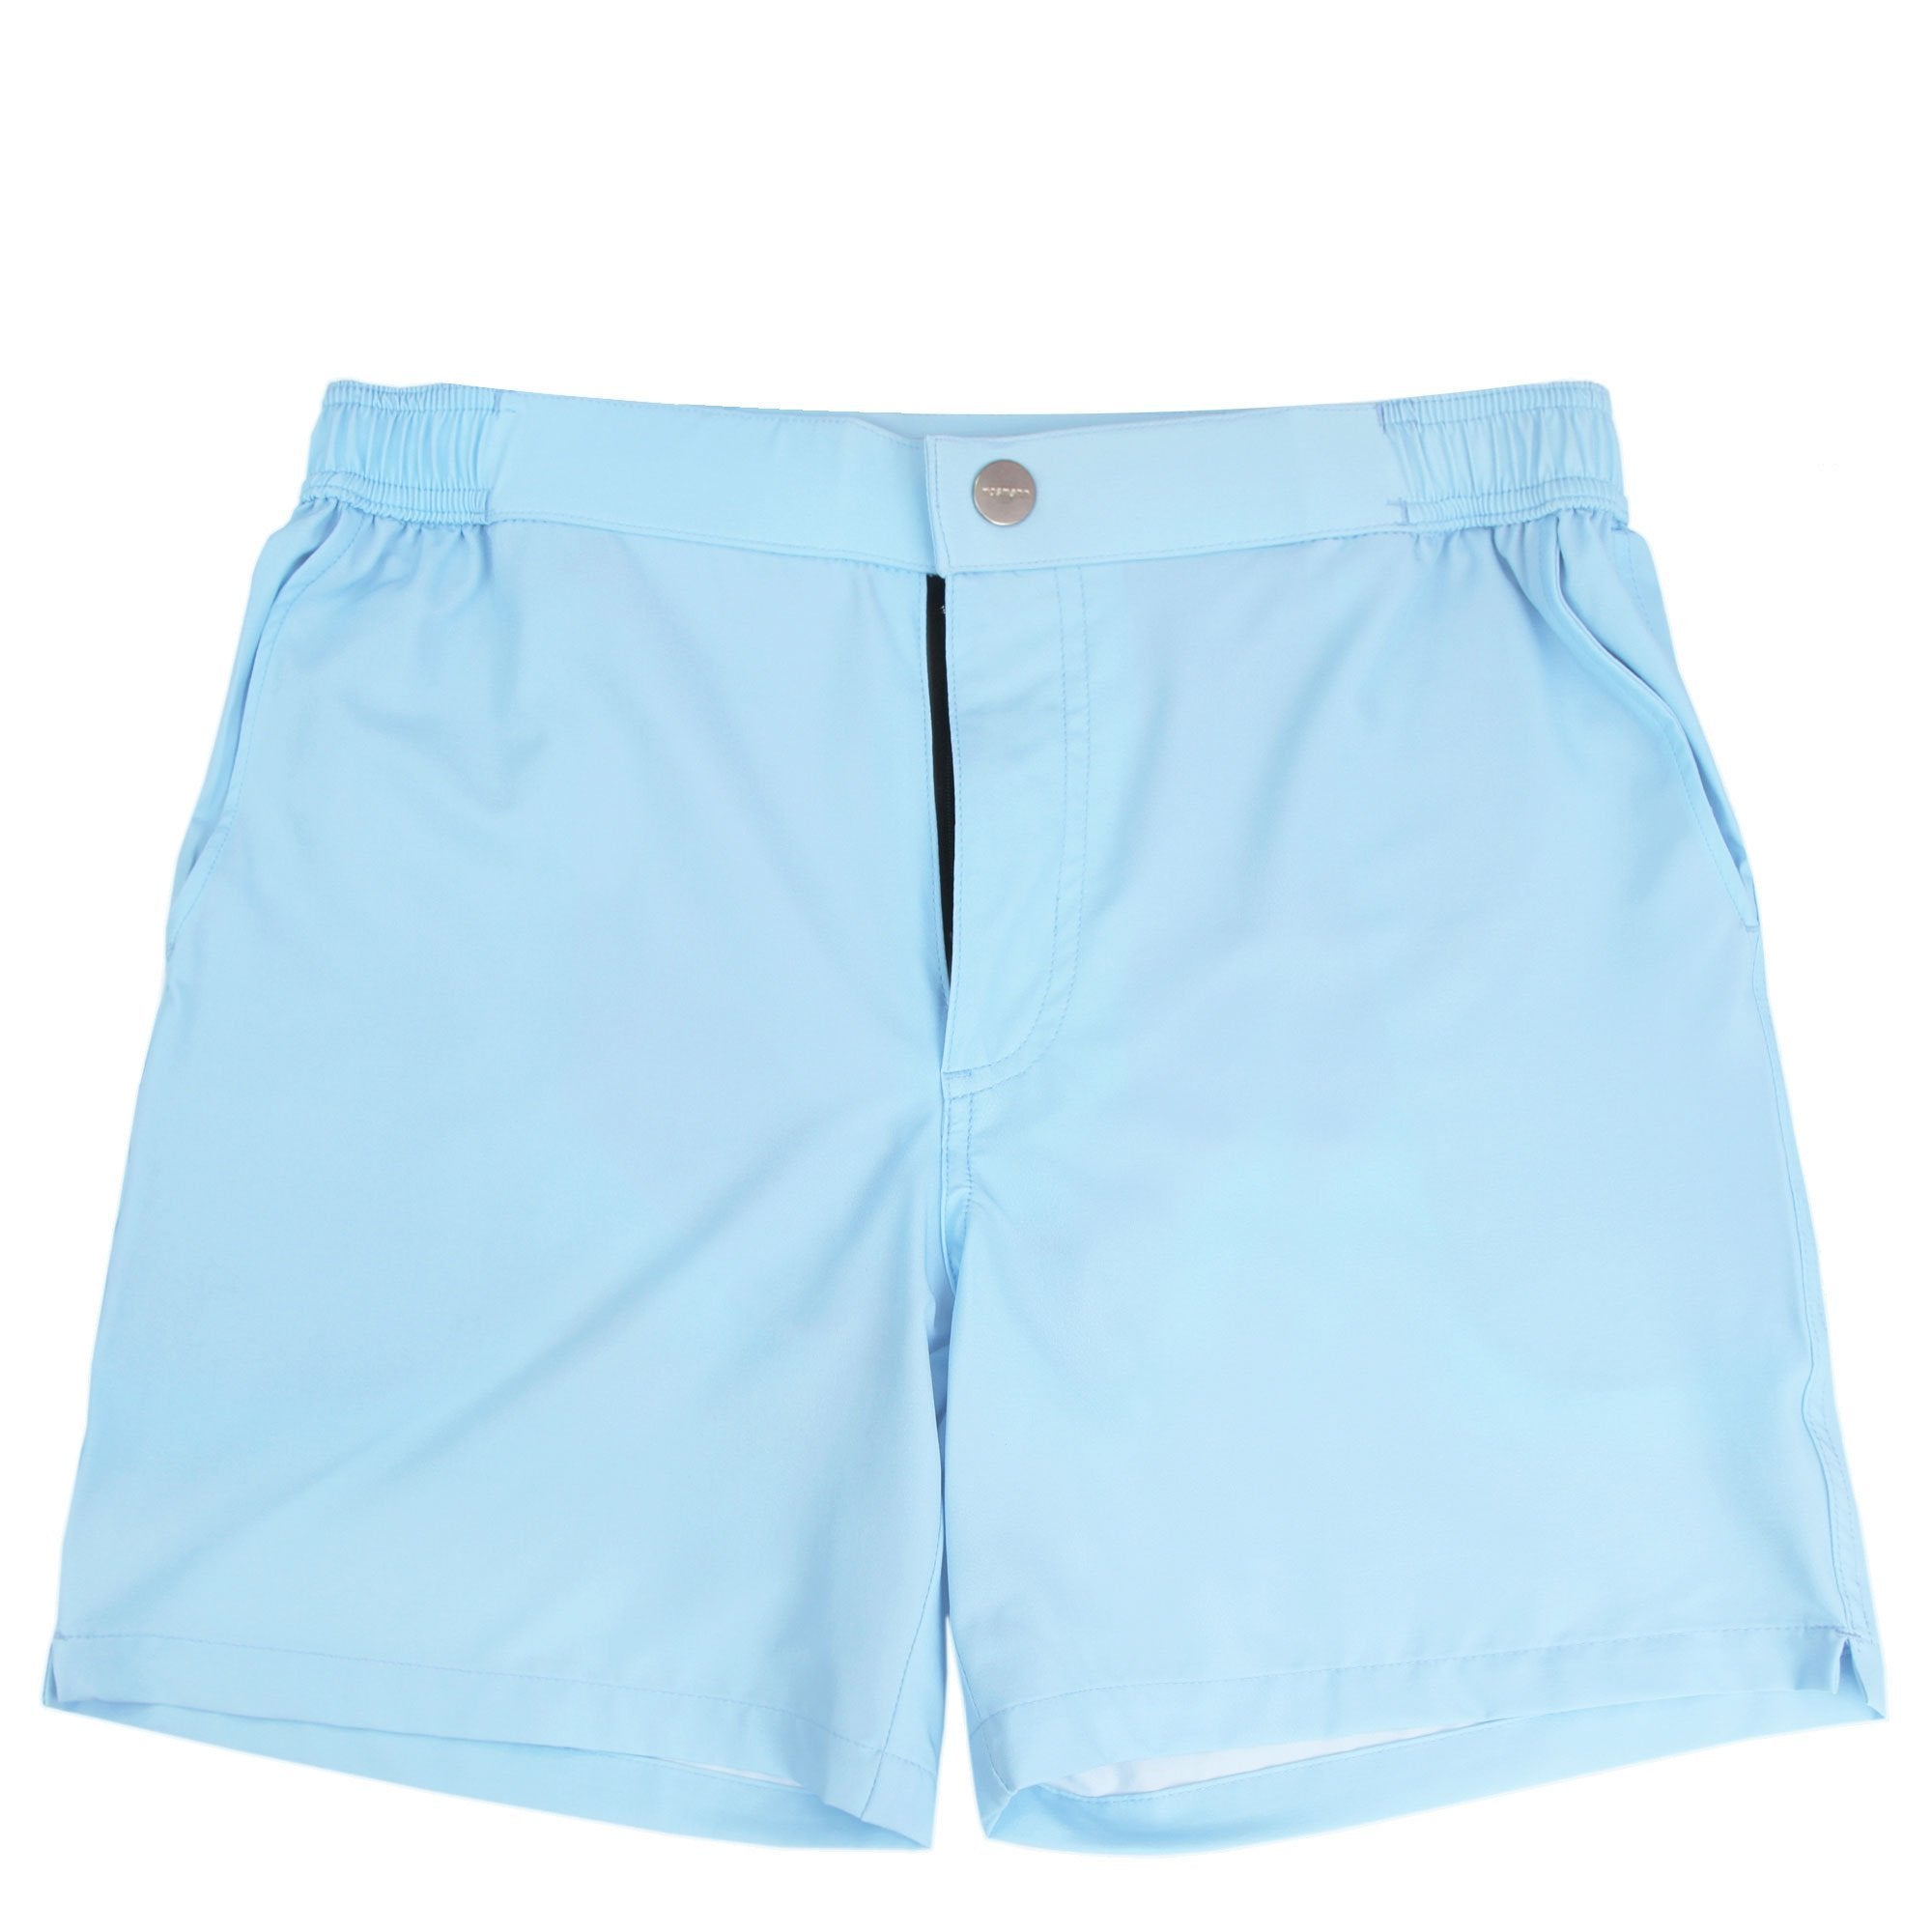 Light-Blue-Swim-Shorts.jpg